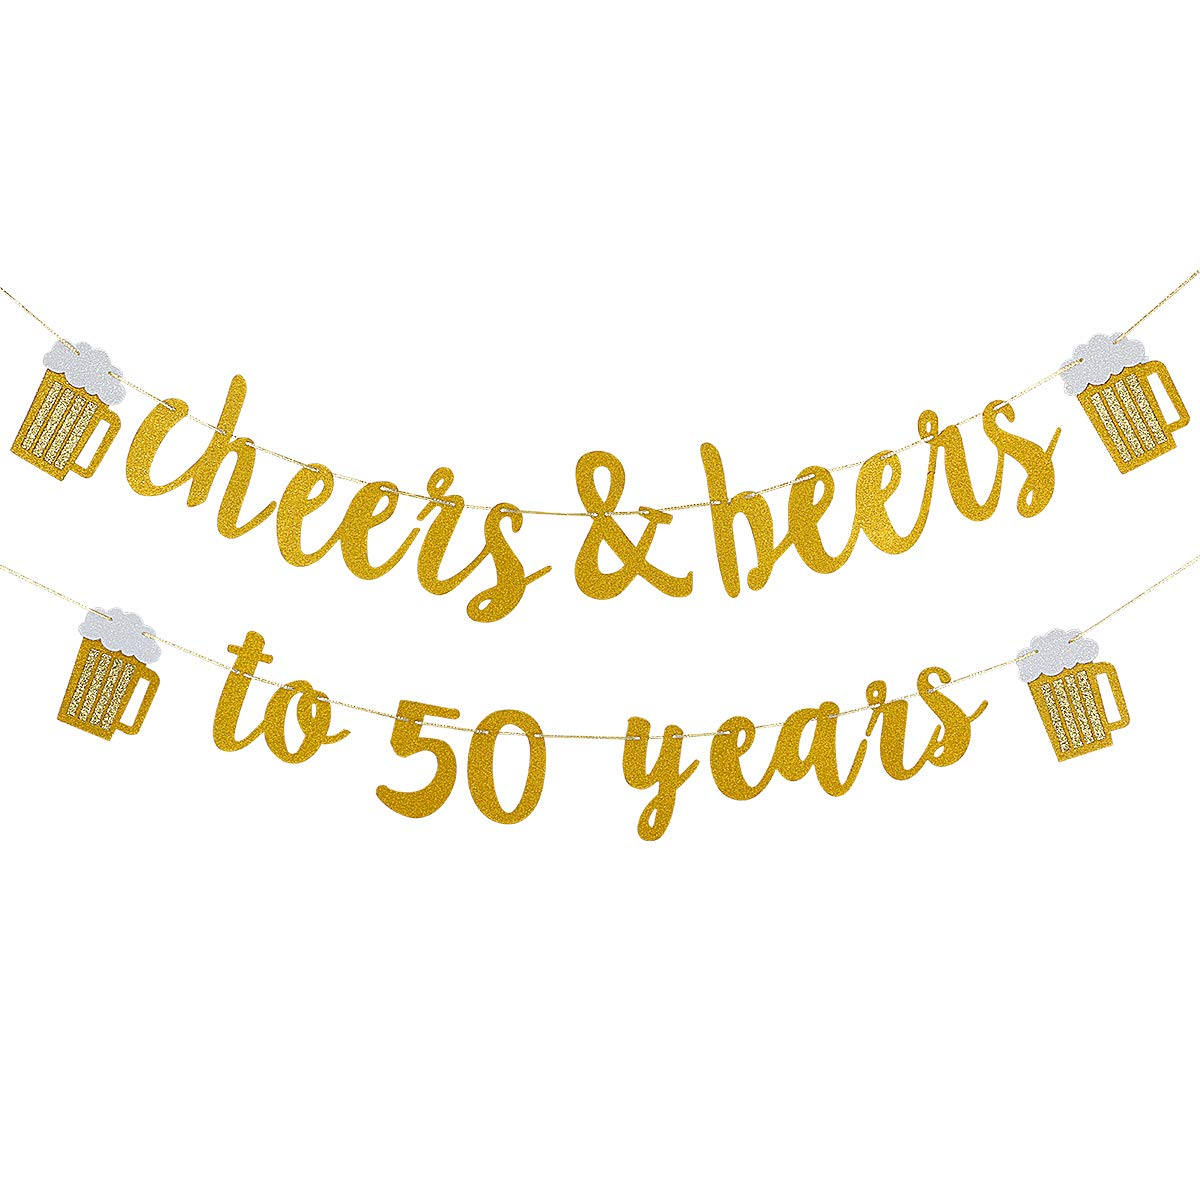 Cheers & Beers to 50 Years Gold Glitter Banner.